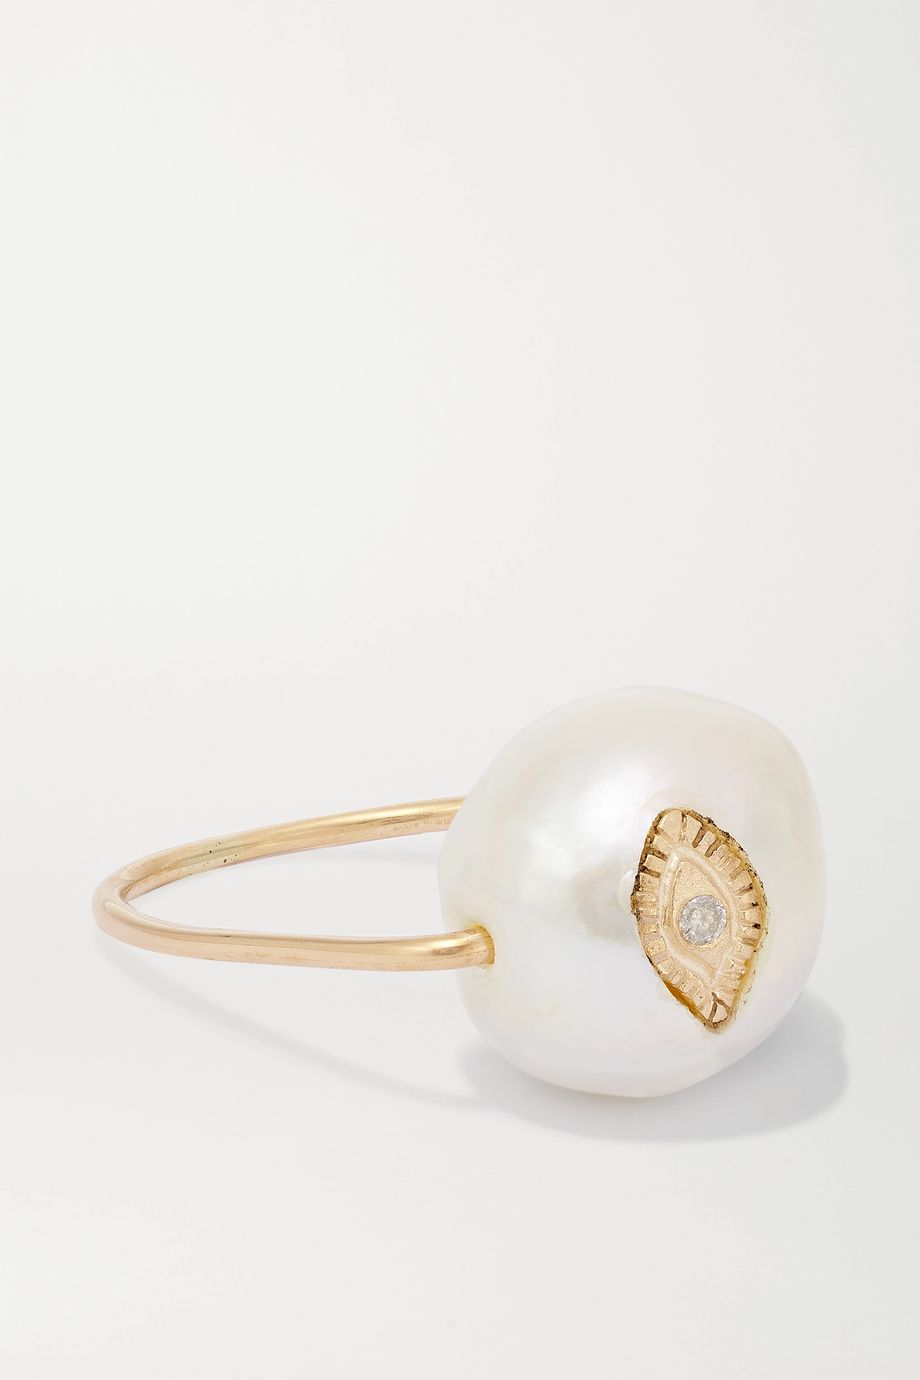 Pascale Monvoisin Charlie 9-karat gold, pearl and diamond ring